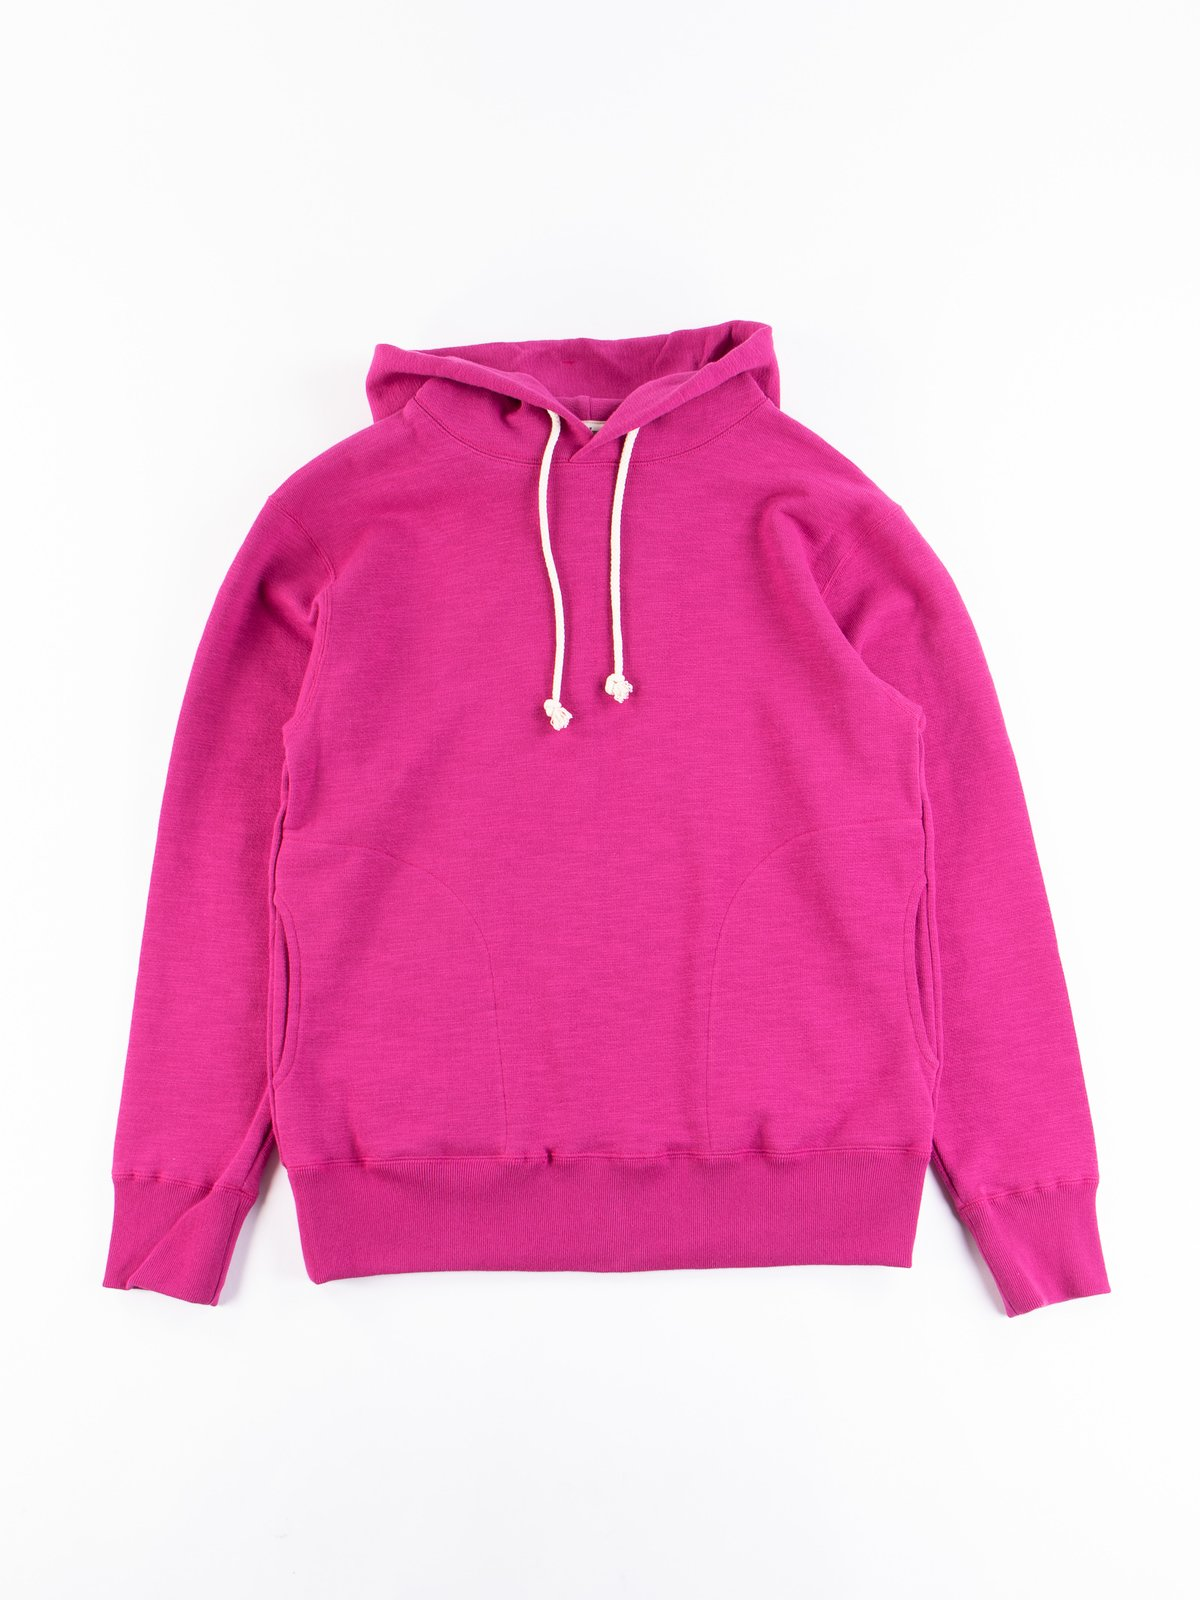 Ash Rose GG Sweat Pullover Parka - Image 1